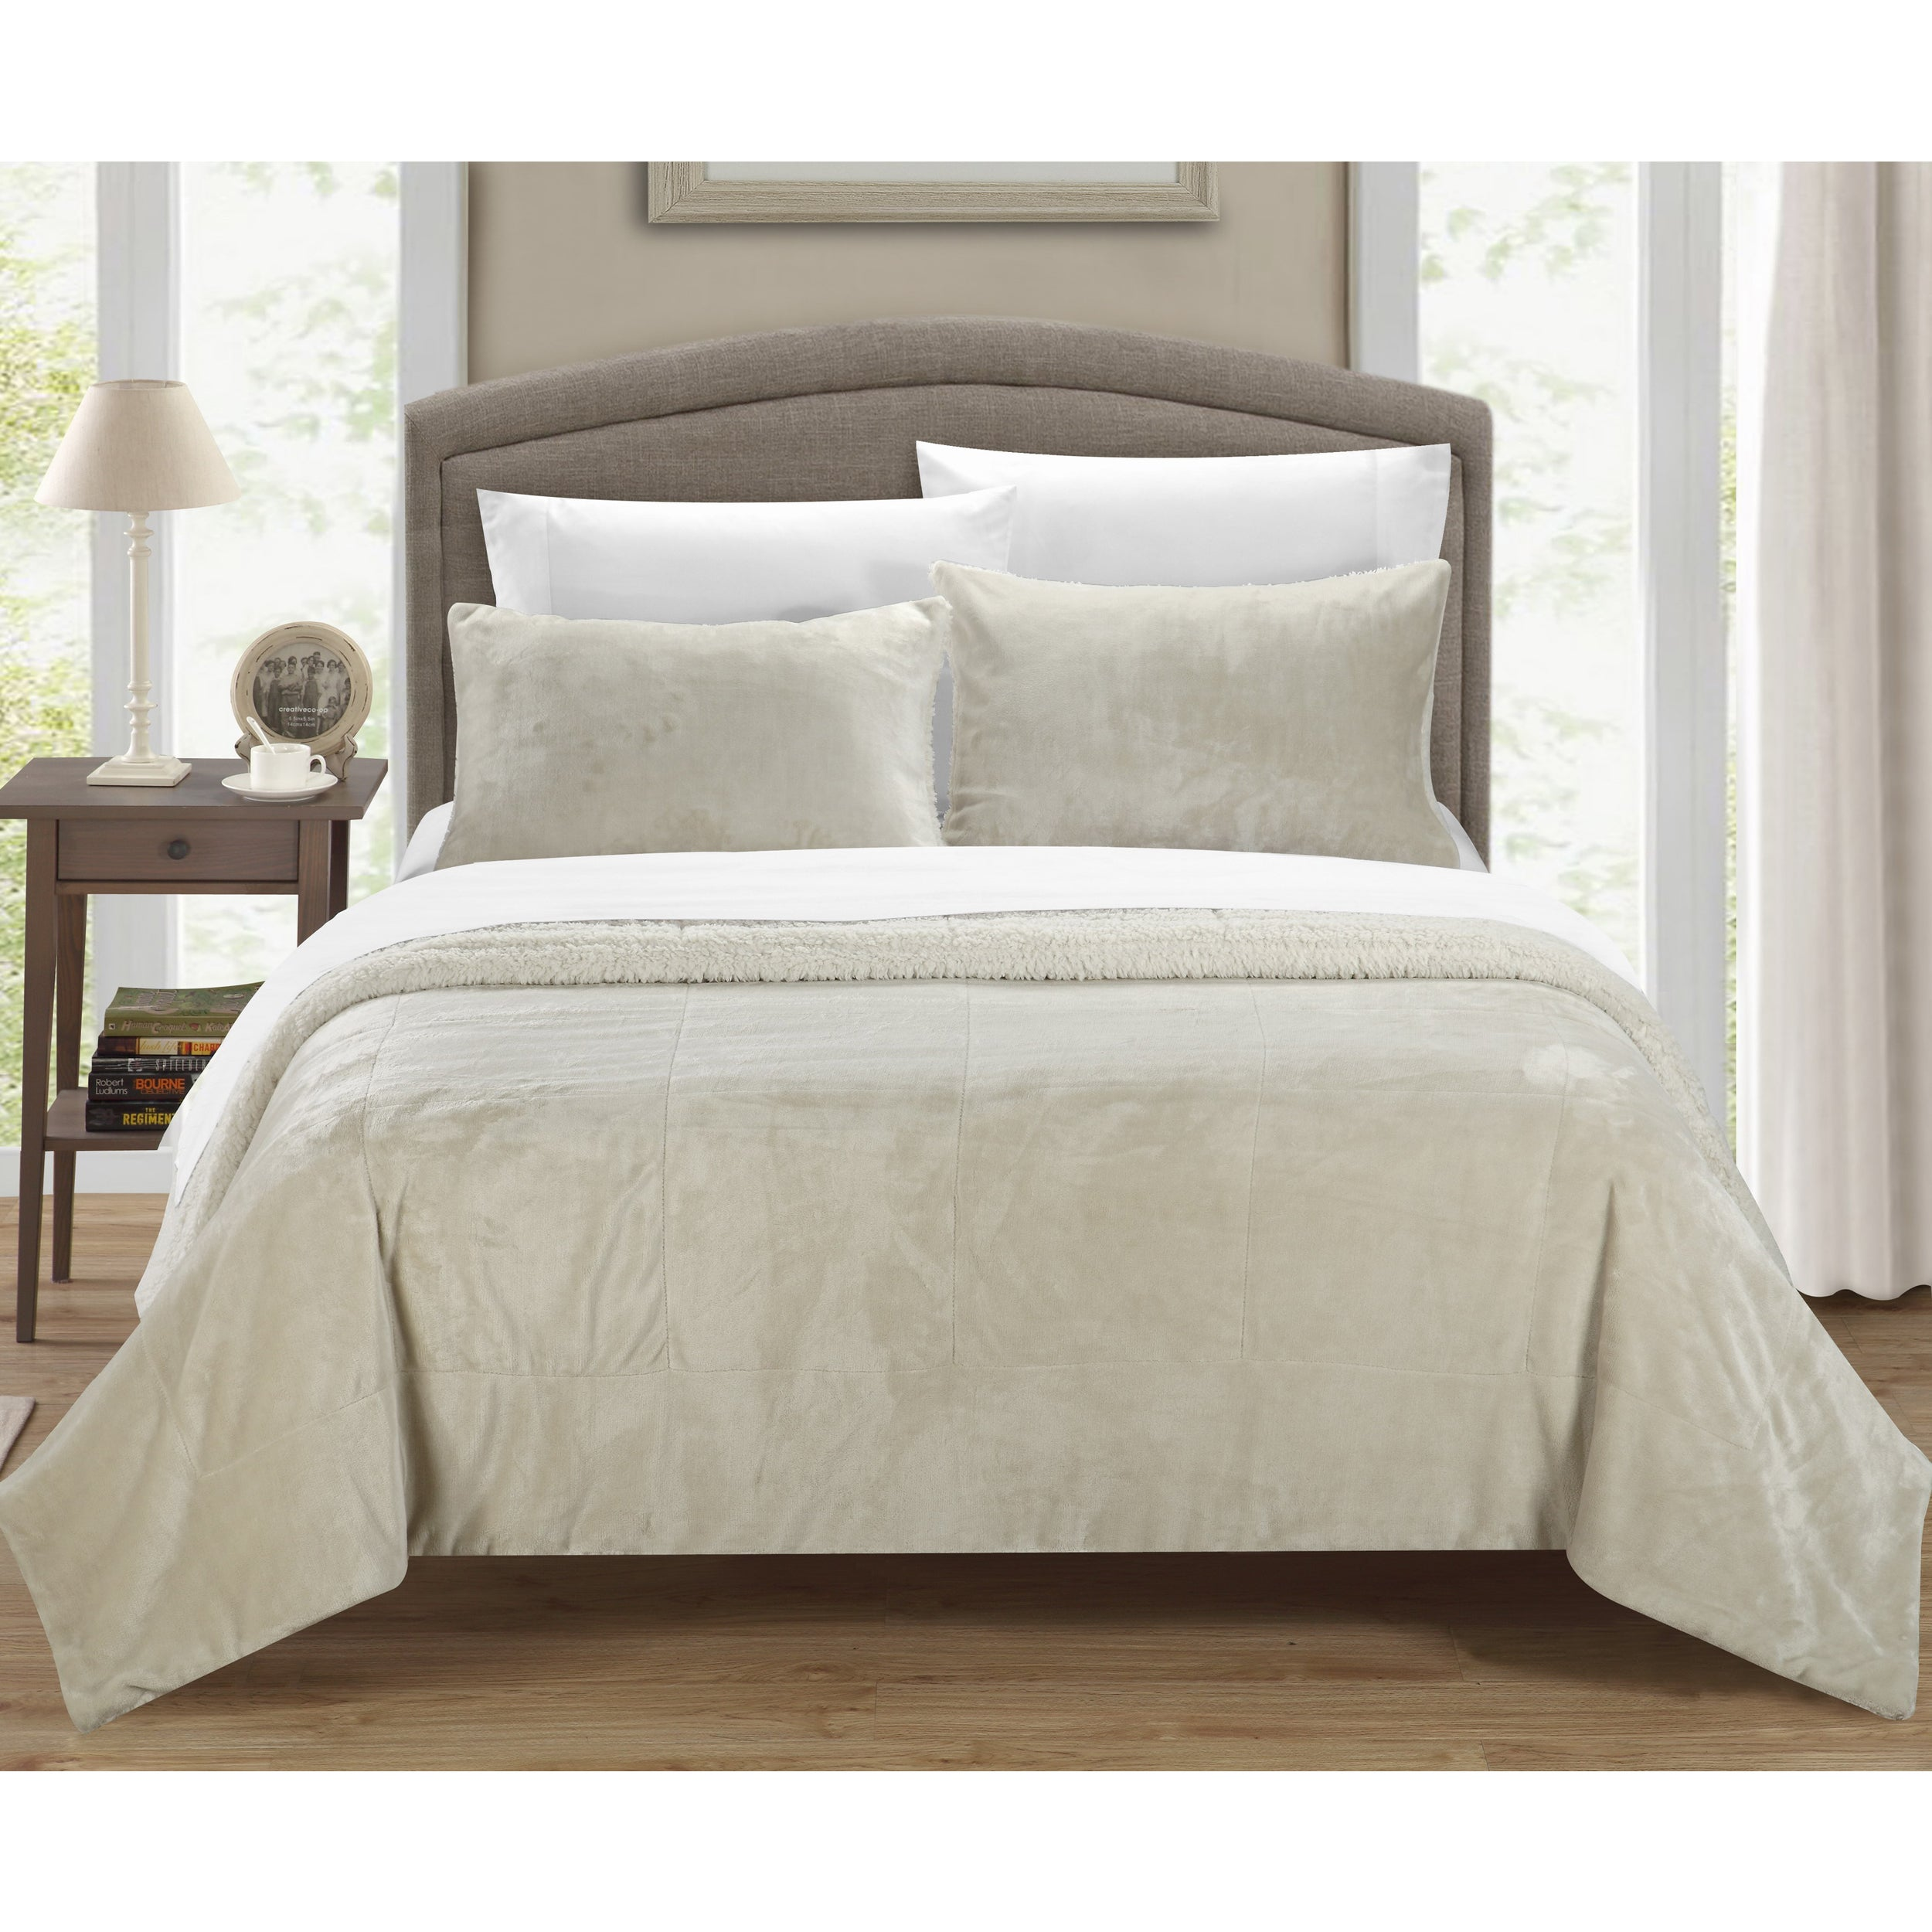 madison meyers free micro bath comforter bedding today product shipping grey overstock park solid set pattern piece casual suede